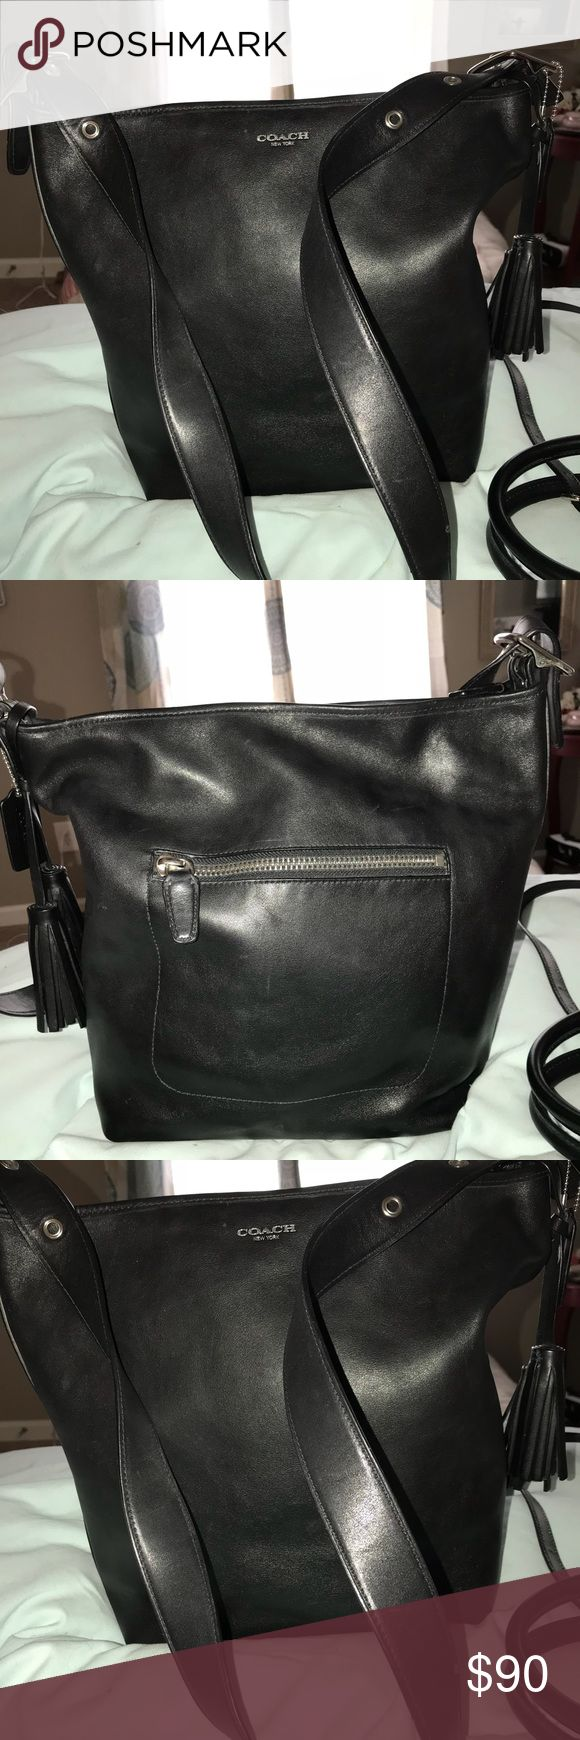 "Coach Legacy large Leather Shoulder Bag Coach Legacy Black Leather Duffle Shoulder Bag Convert Crossbody. This bag is in excellent condition with a tiny bit of wear. It feels like butter in your hands!!!  Quantity: 1 available Brand: Coach Bag Height: 13"" Approx Style: Hobo Bucket Duffel Handbag Crossbody Shoulder Bag Bag Depth: 5"" Approx Material: Leather Coach Bags Shoulder Bags"